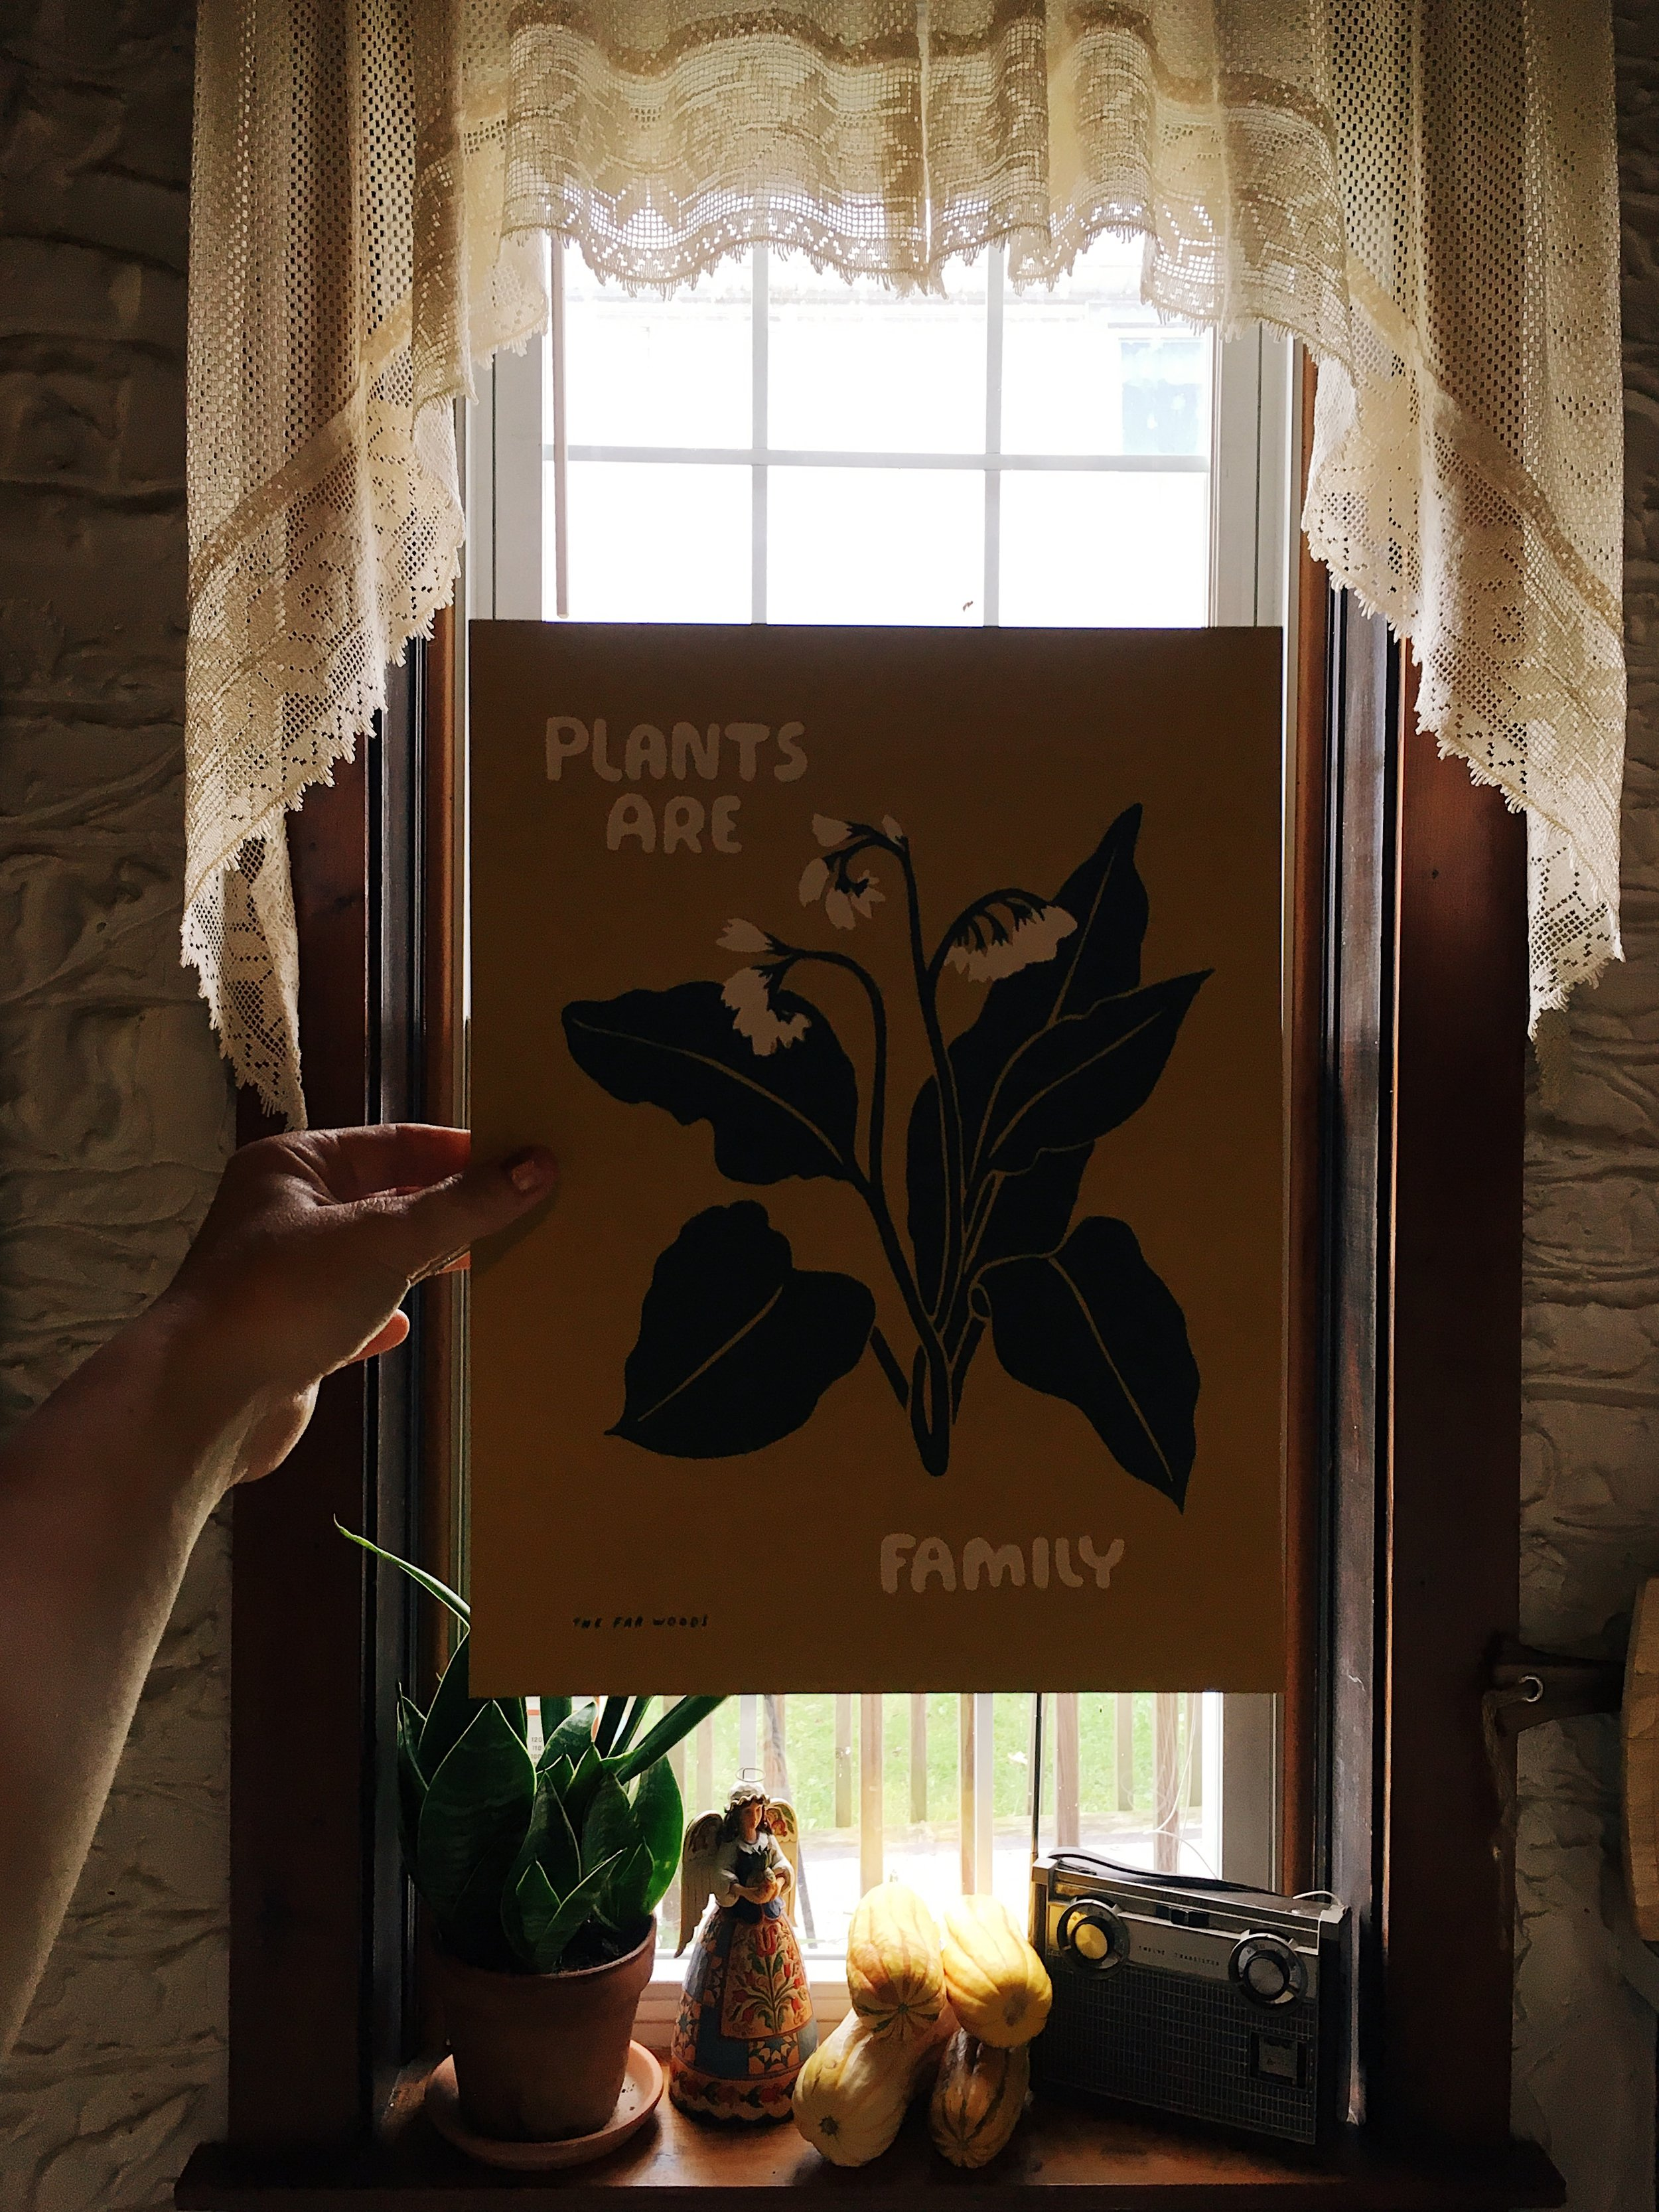 Plants Are Family Print by The Far Woods Image by Samantha Spigos